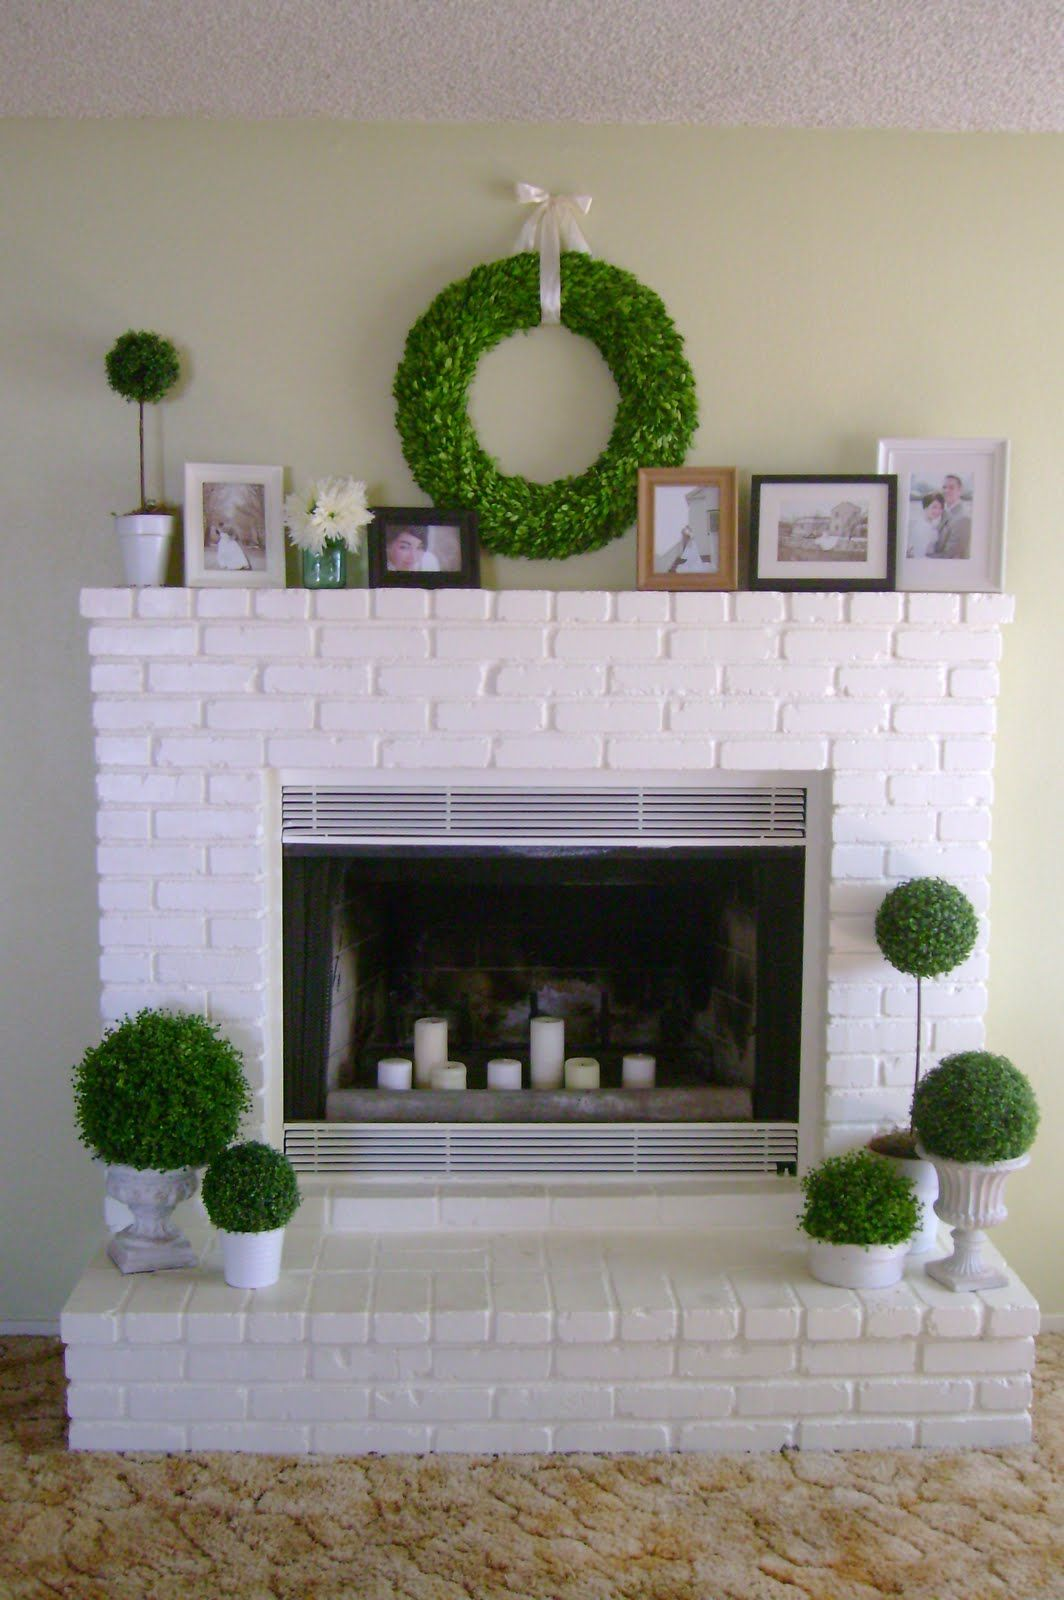 10 fireplace before and after diy projects | brick fireplace